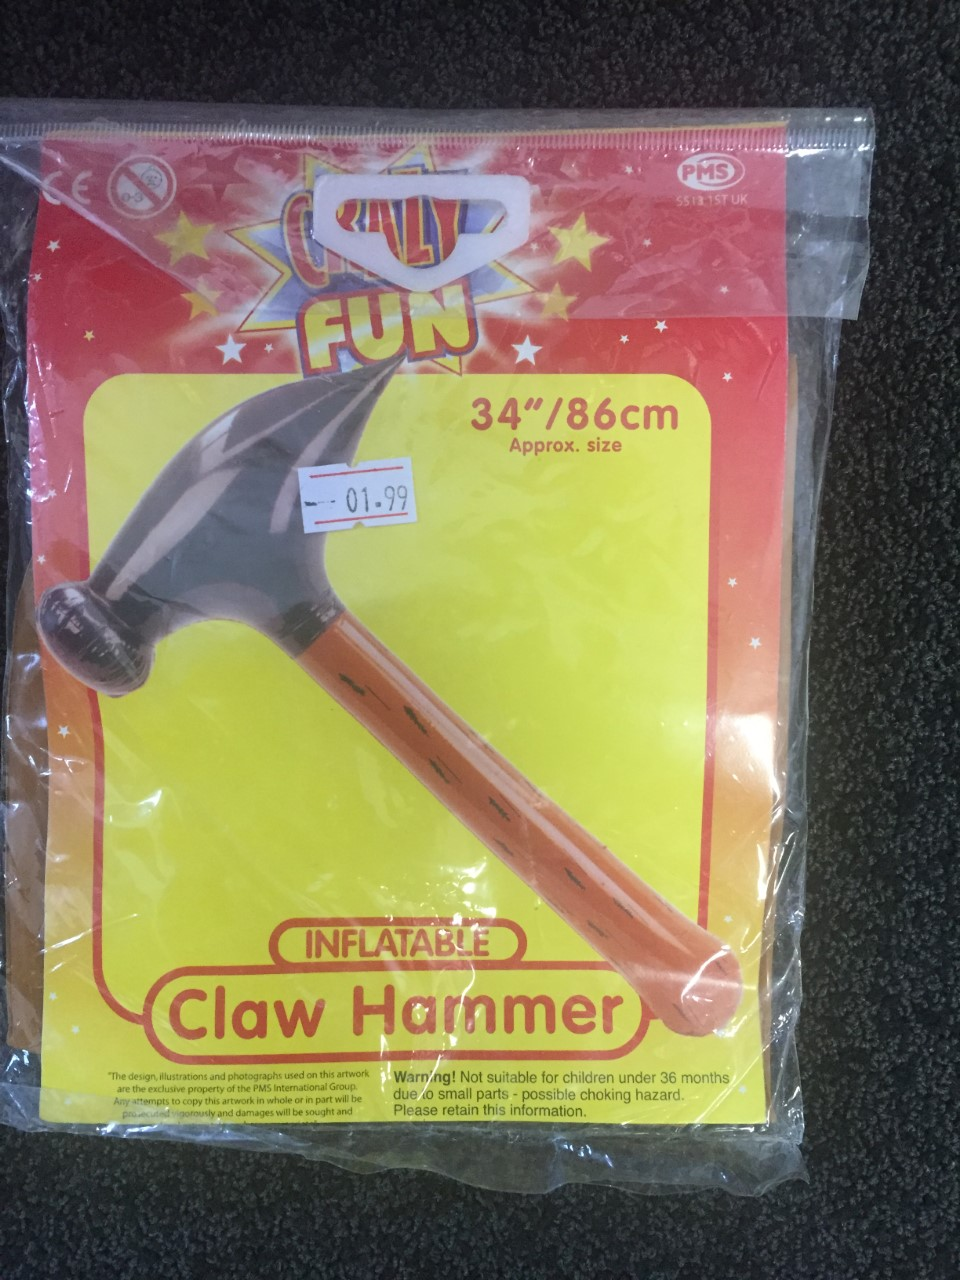 ACCESSORIES/INFLATABLES/inflatable claw hammer